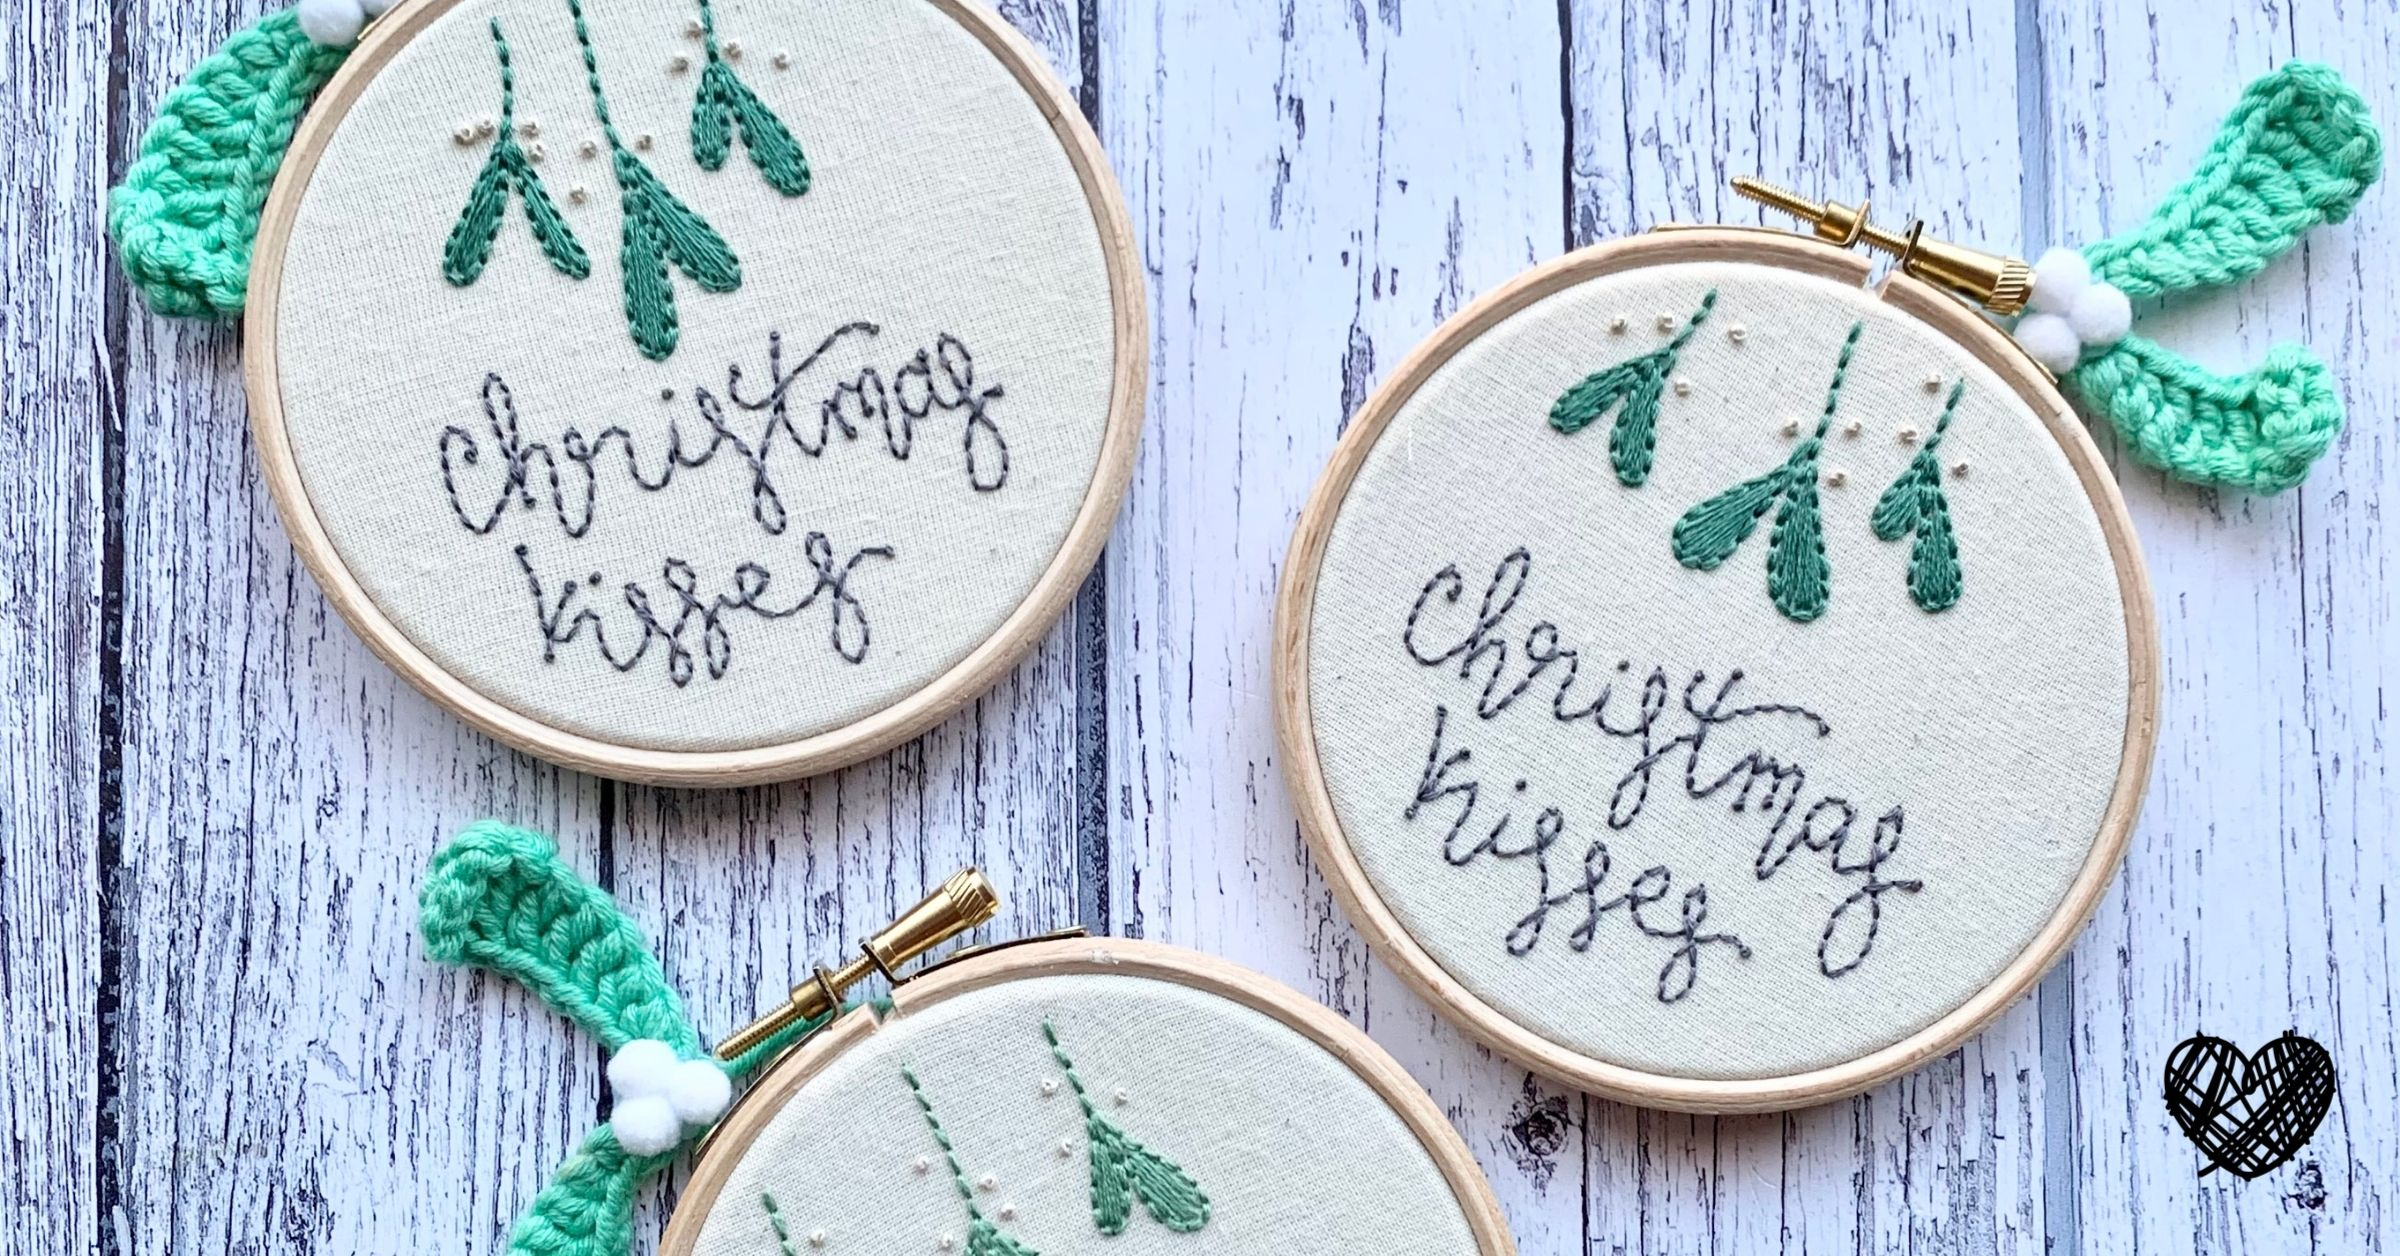 Christmas Kisses - It Started With a Stitch